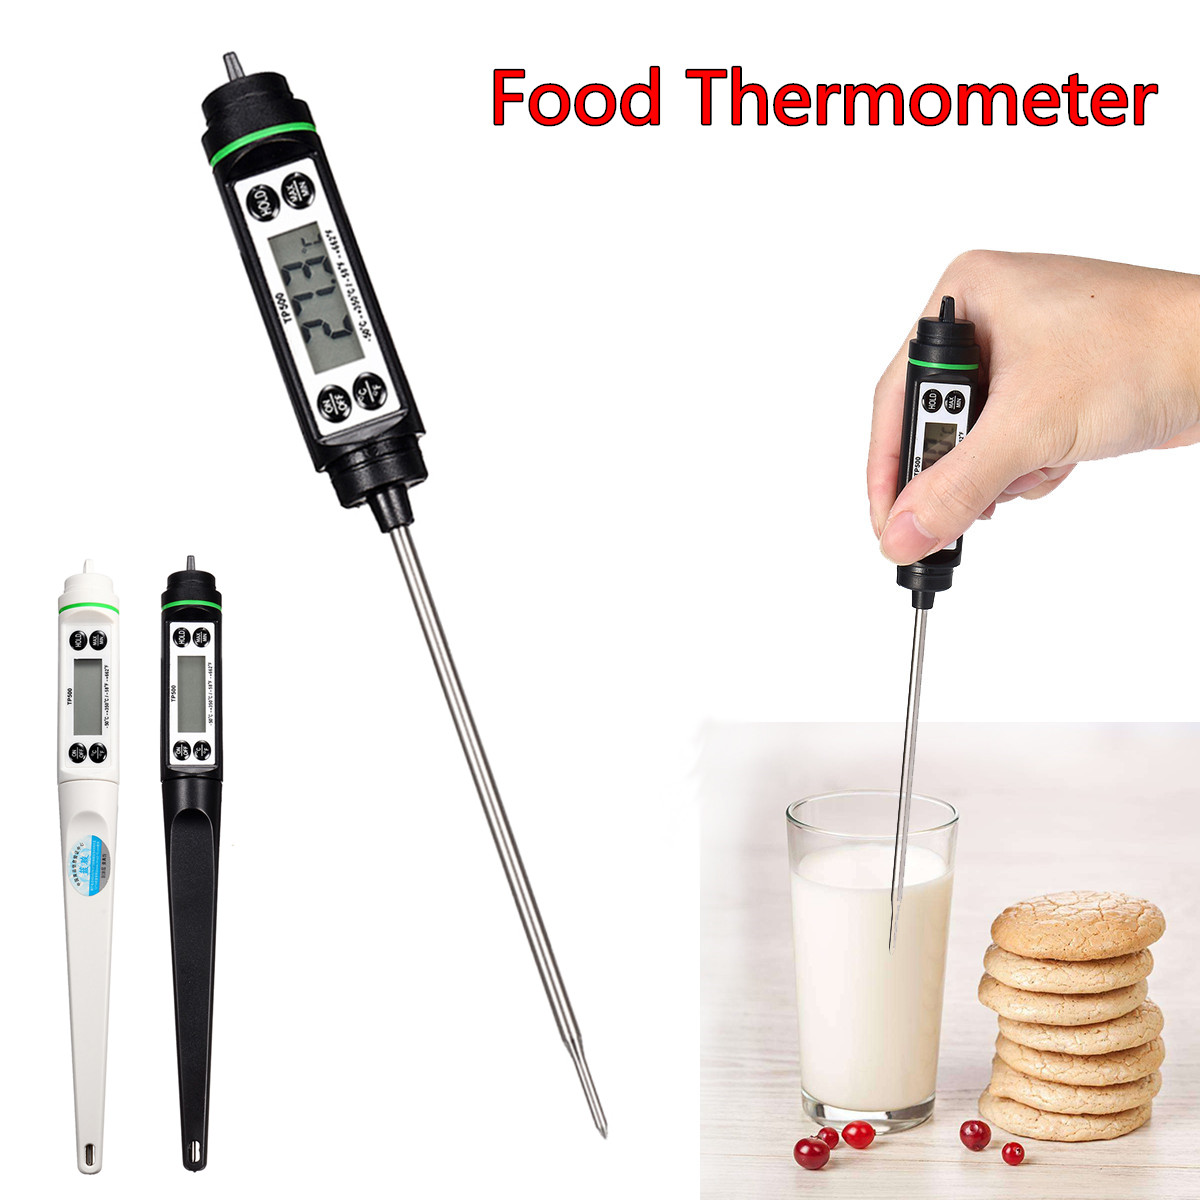 Digital Food Thermometer BBQ Cooking Meat Water Measure Probe Kitchen Tool